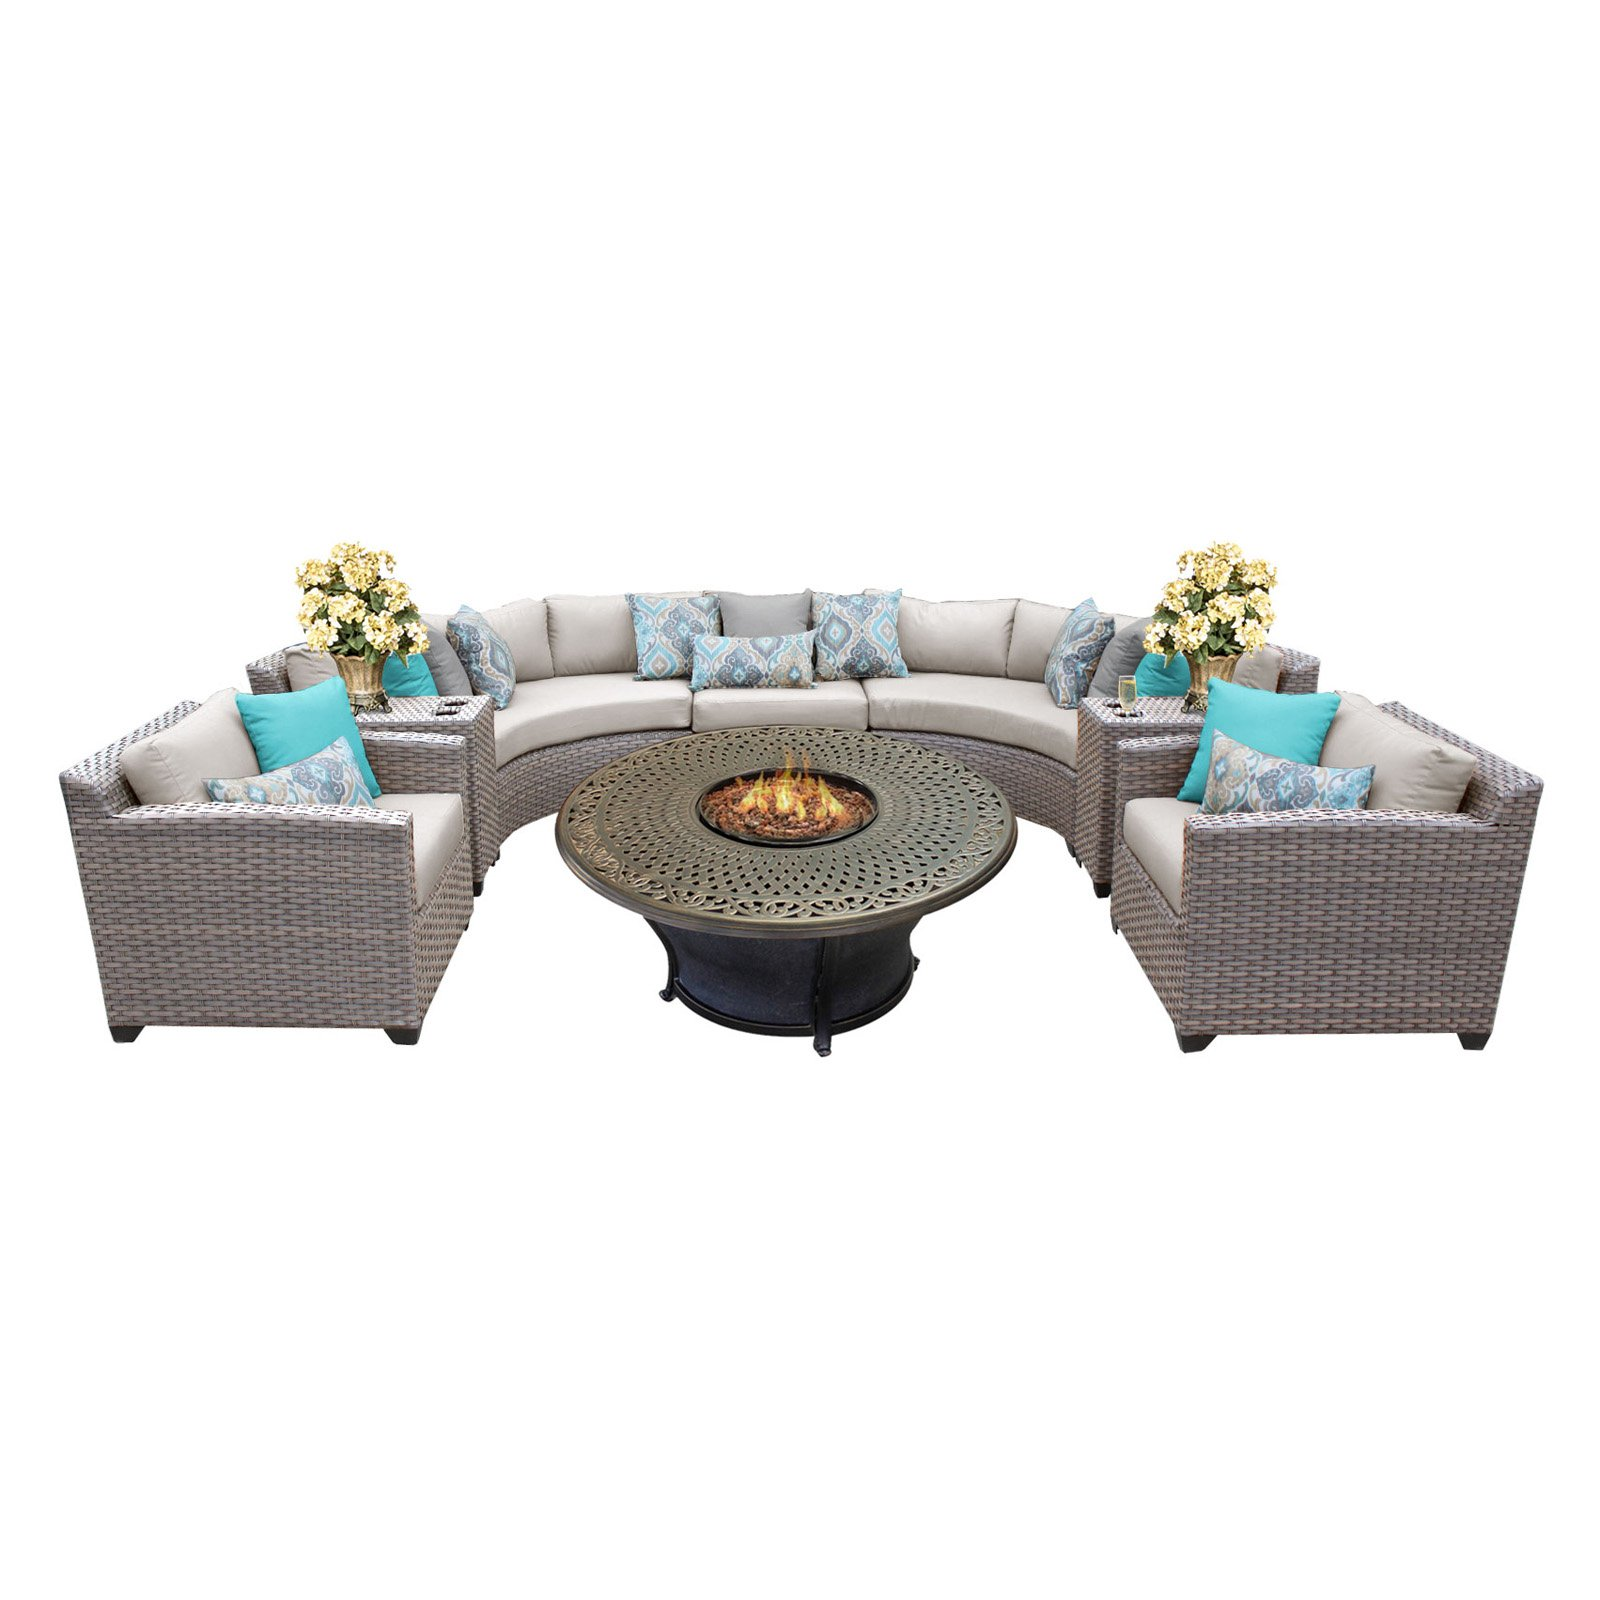 TK Classics Florence Wicker Sectional Patio Set with Charleston Fire Pit